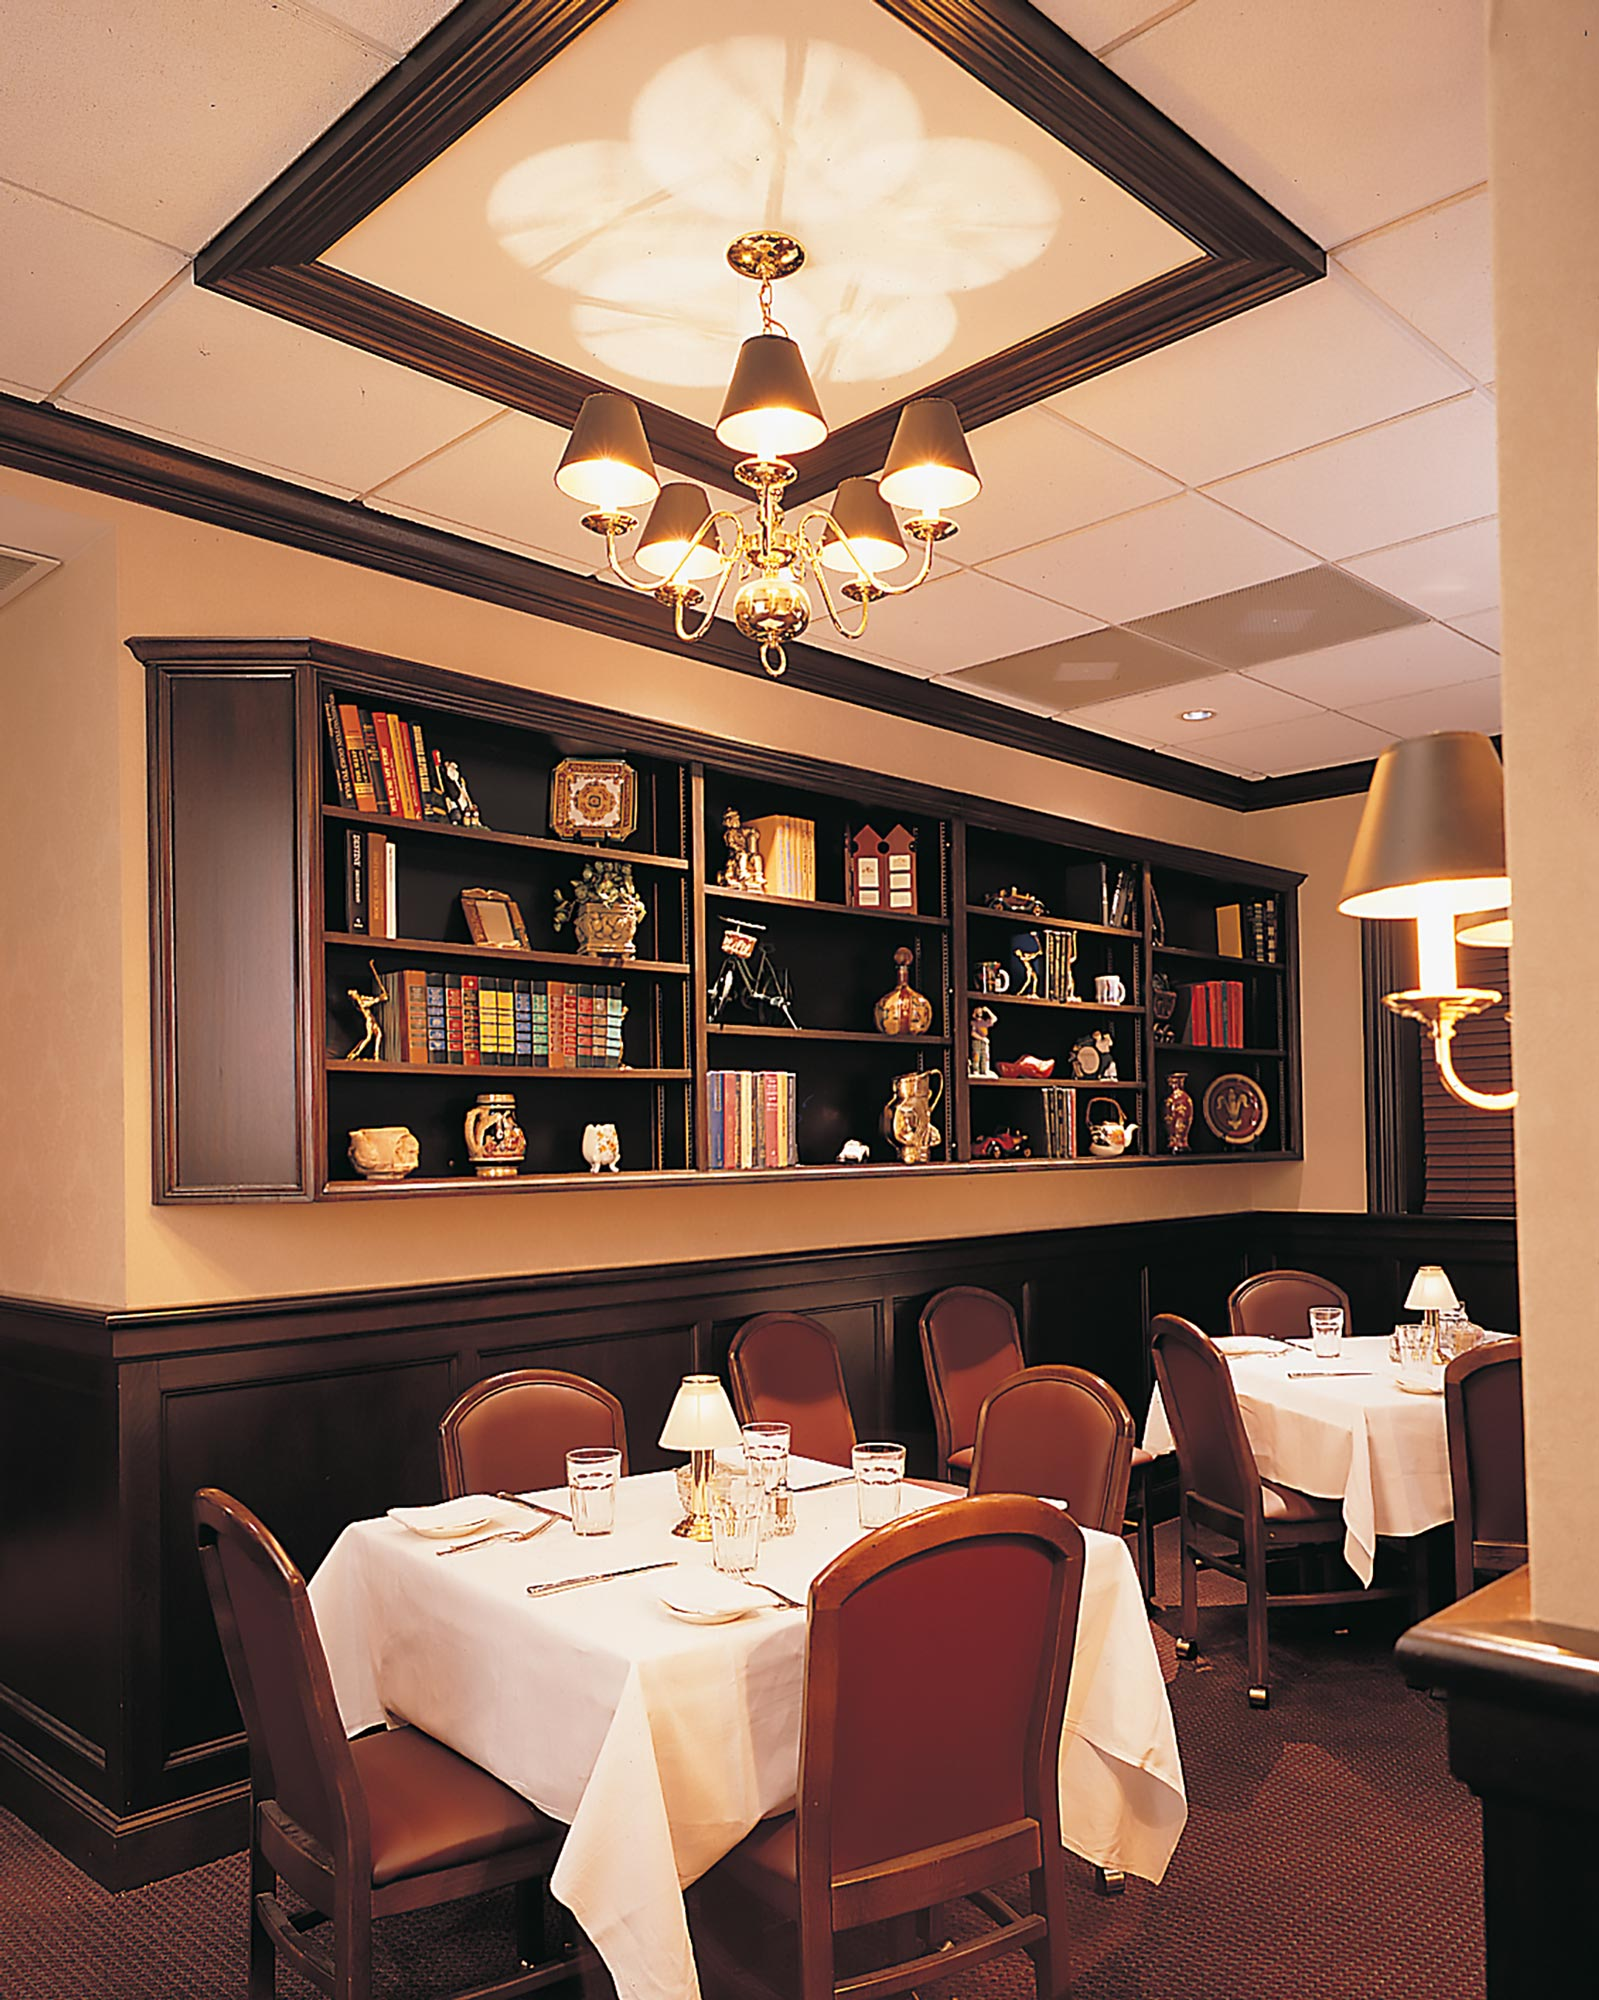 RUTH-CHRIS-SMALL-DINING-ROO-2x.jpg